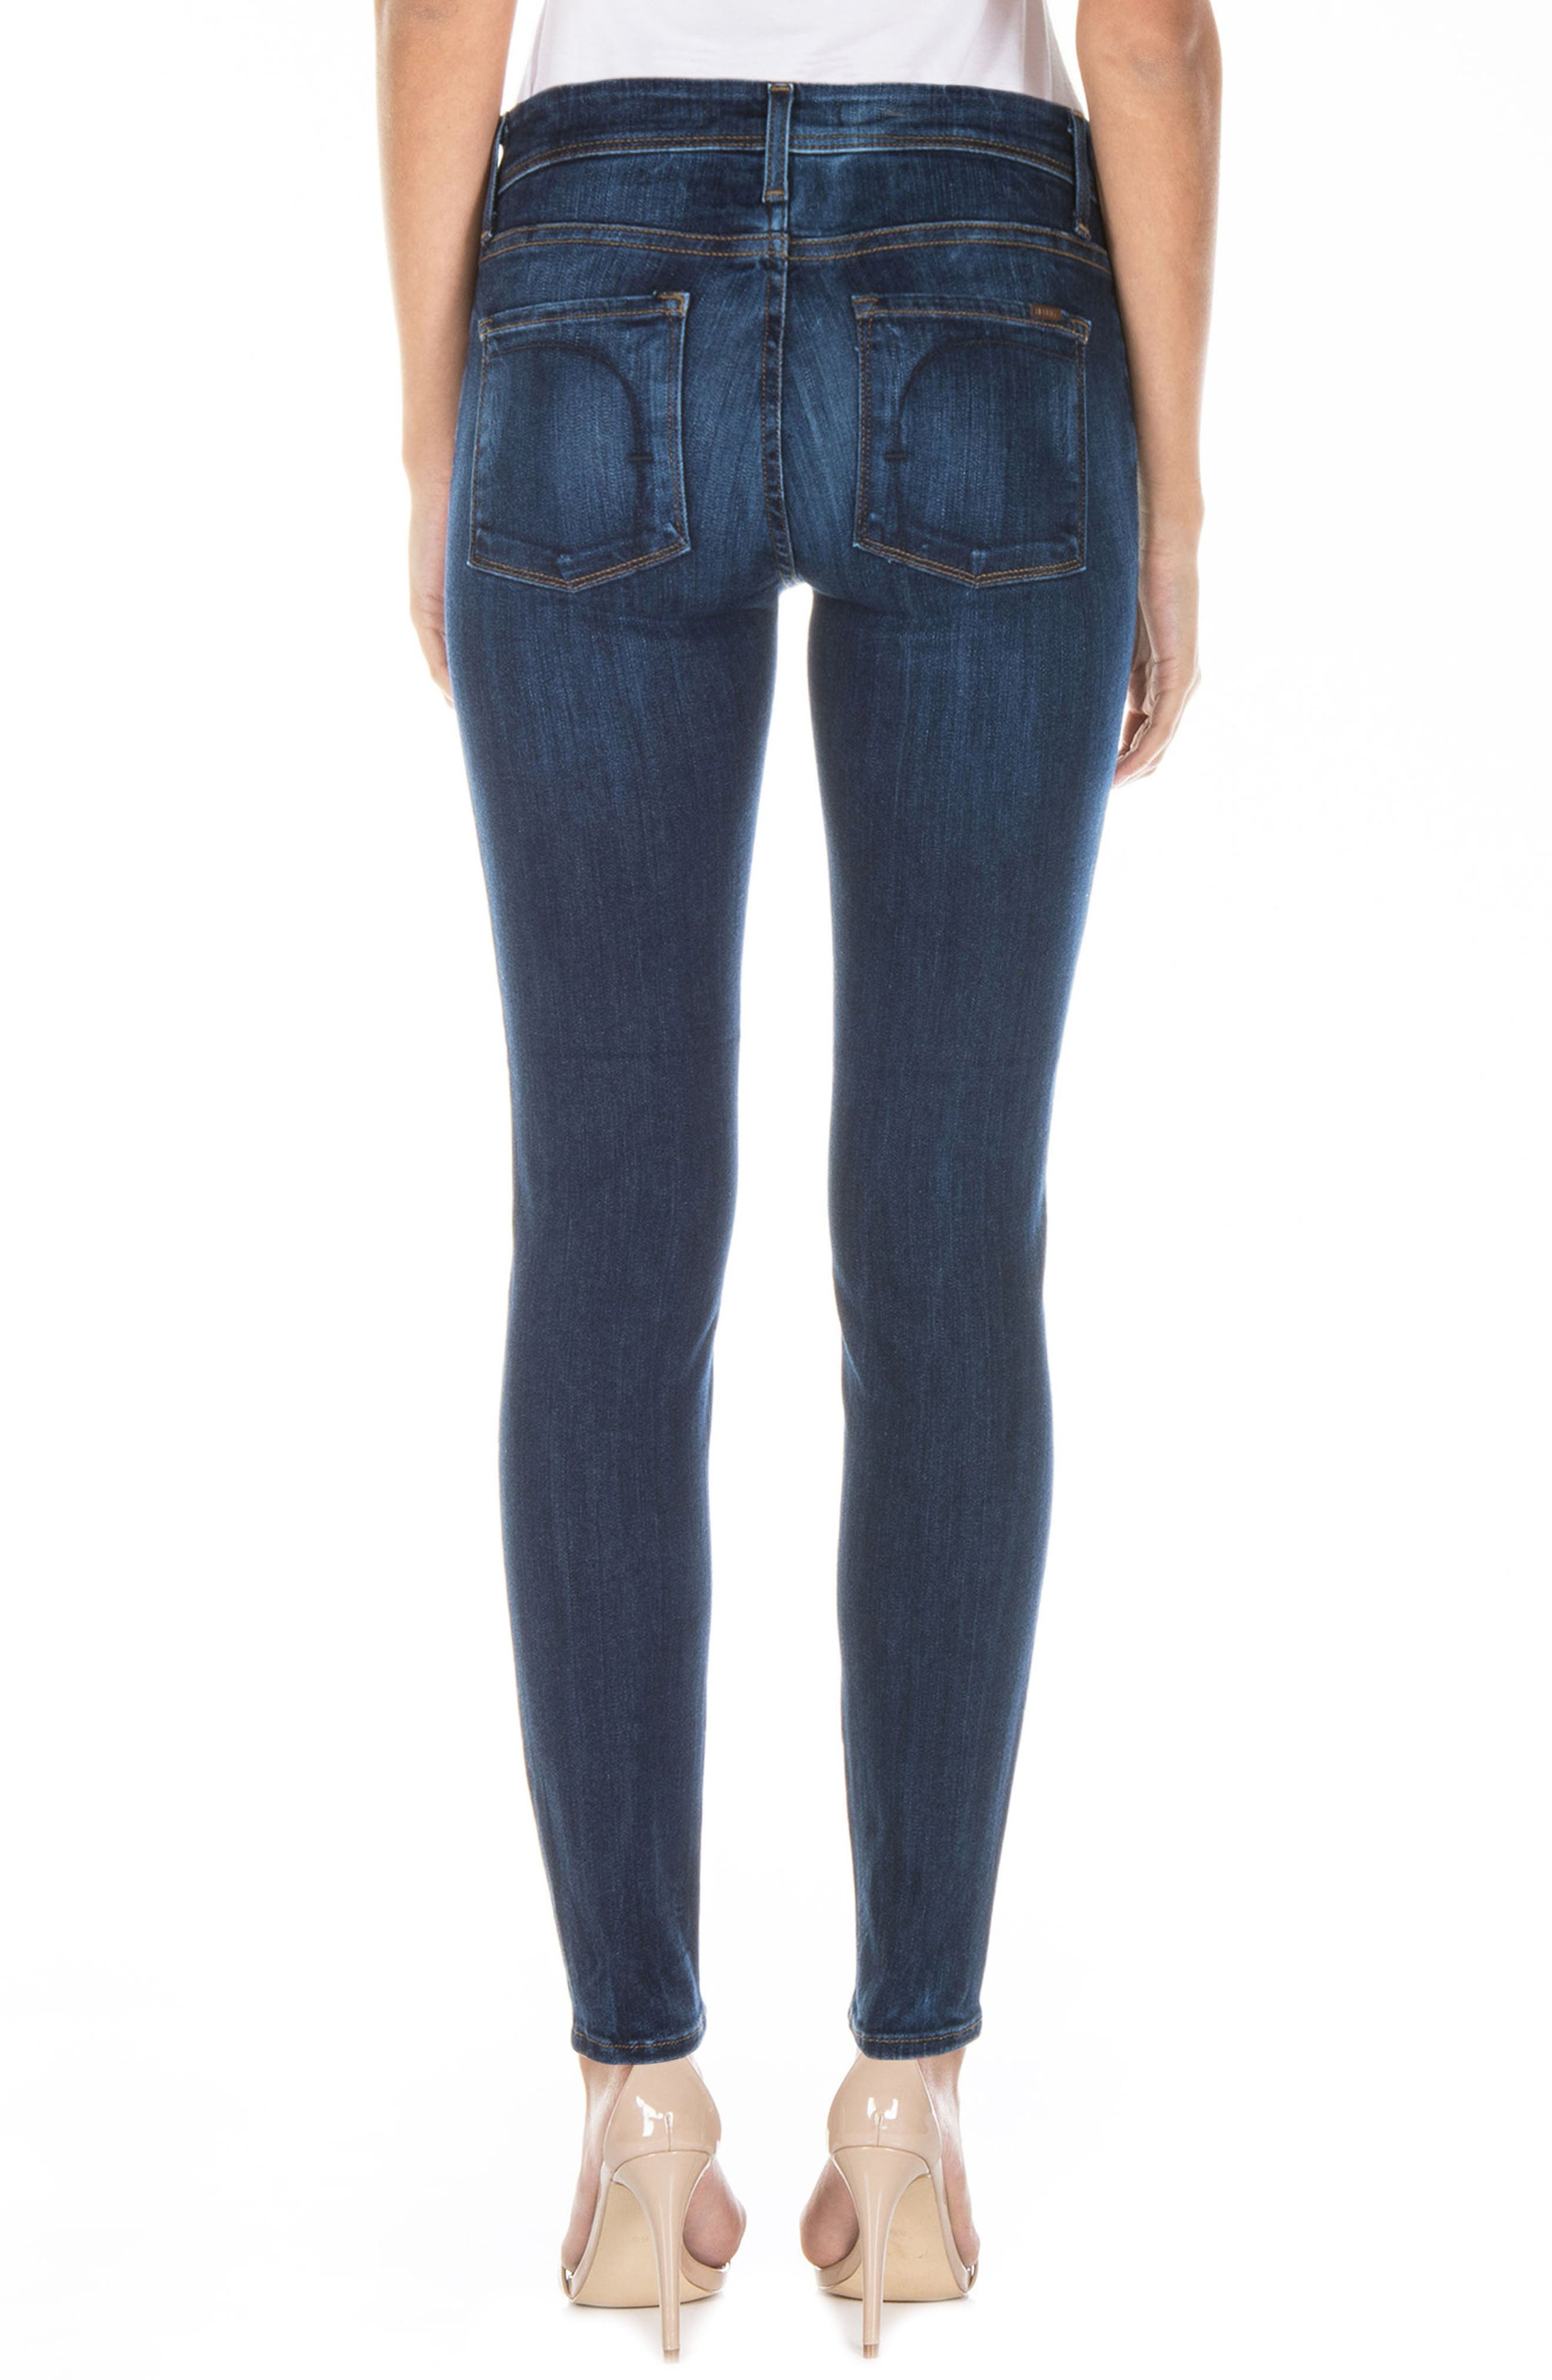 Gwen High Waist Skinny Jeans,                             Alternate thumbnail 2, color,                             Falcon Blue